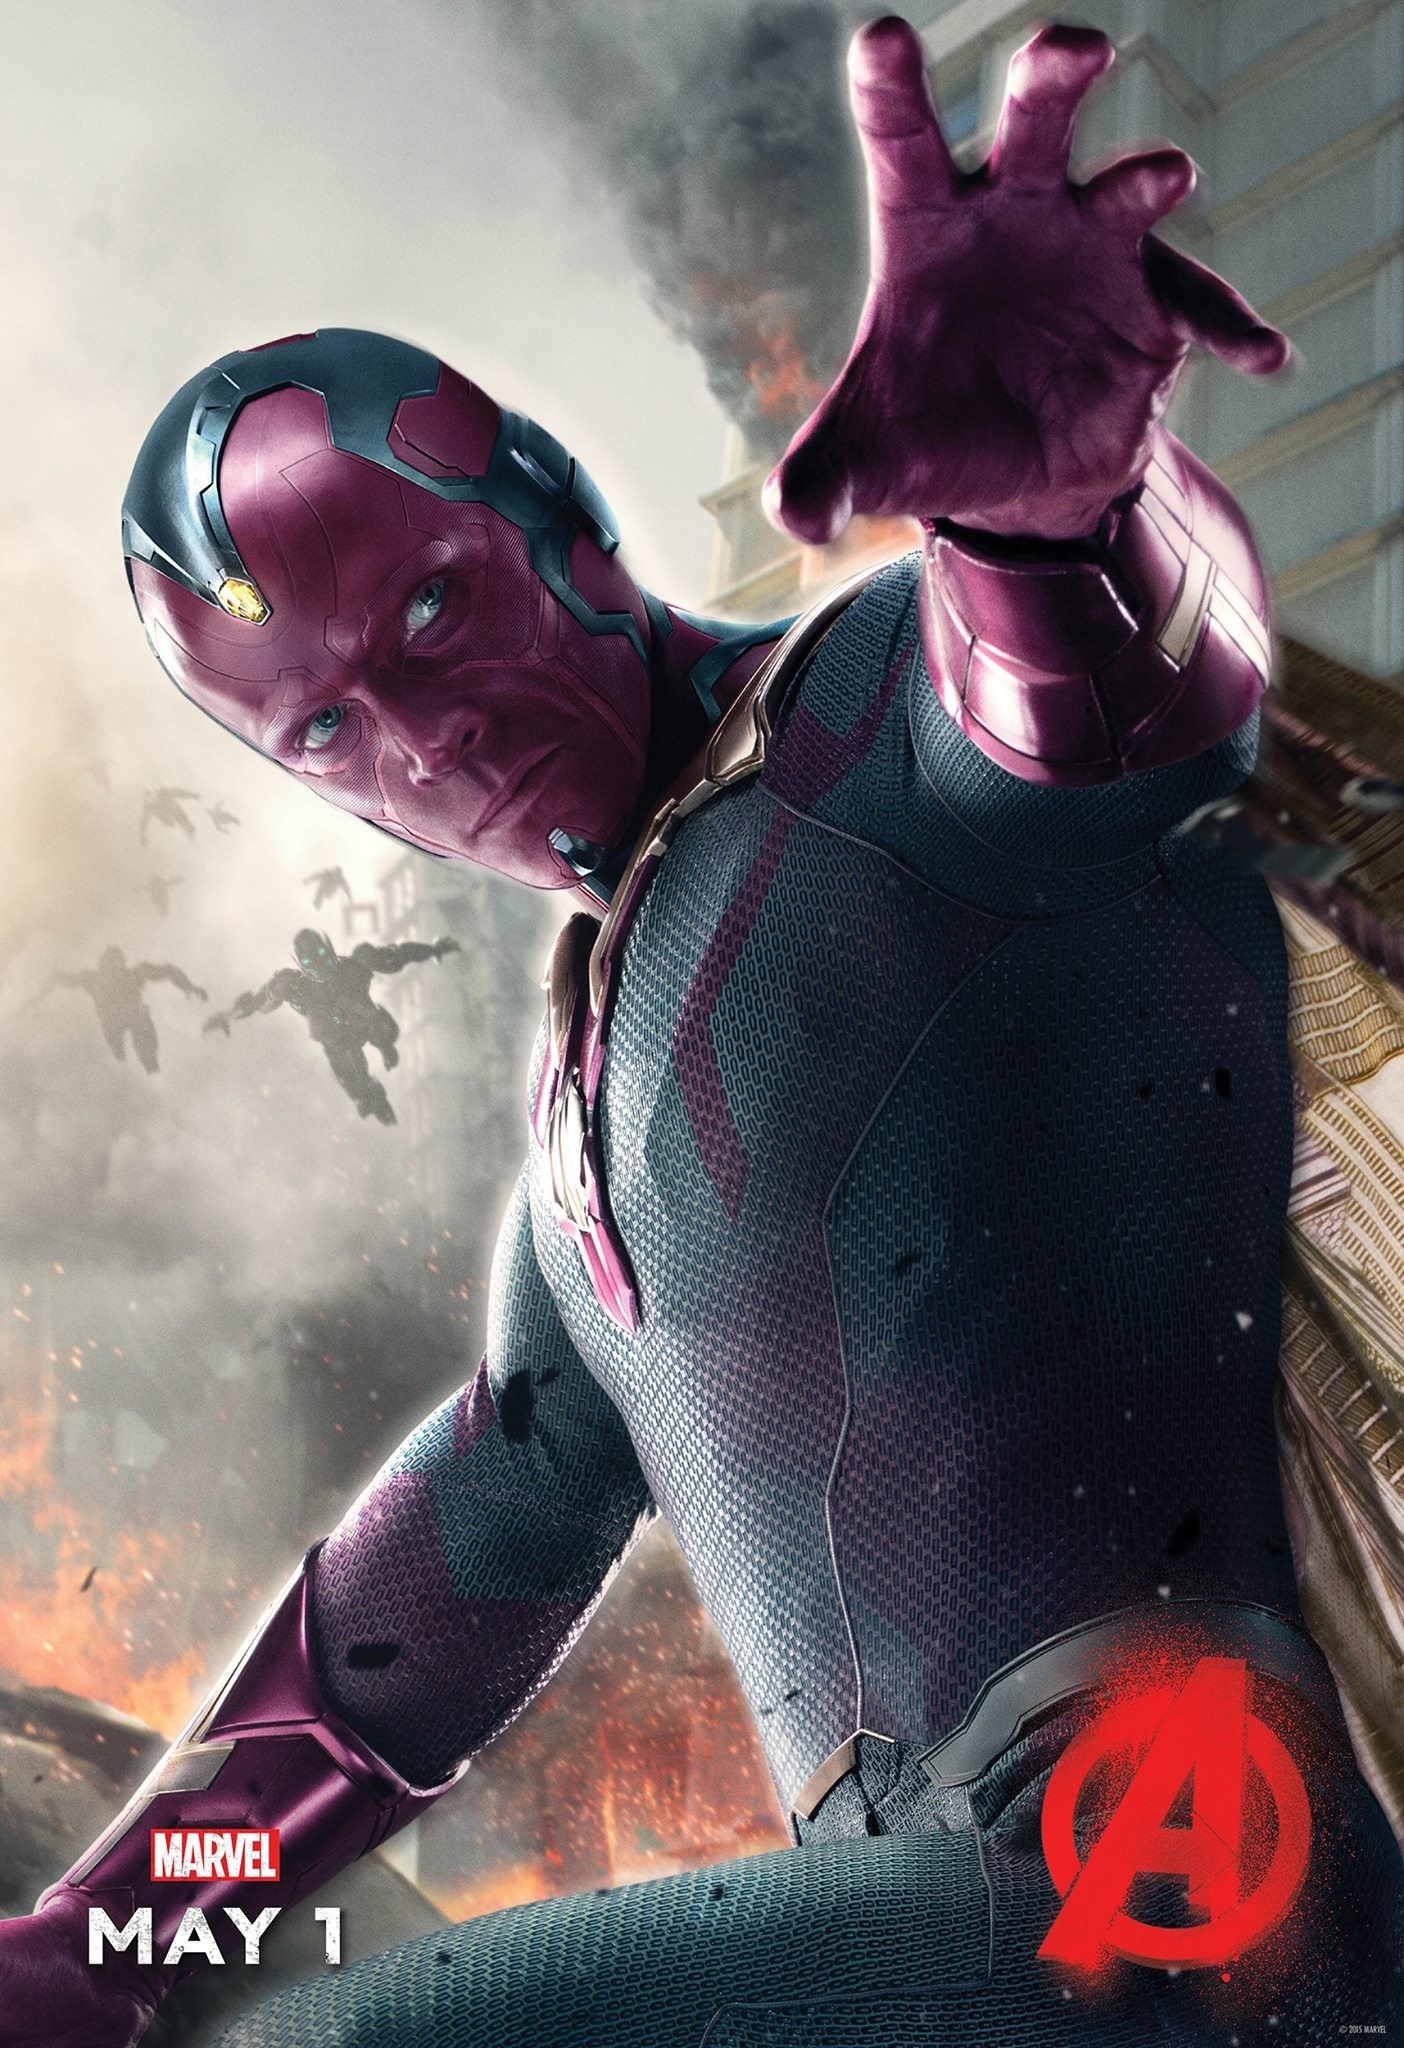 Comics on Film: Why We're Excited for Vision in 'Avengers: Age of Ultron'